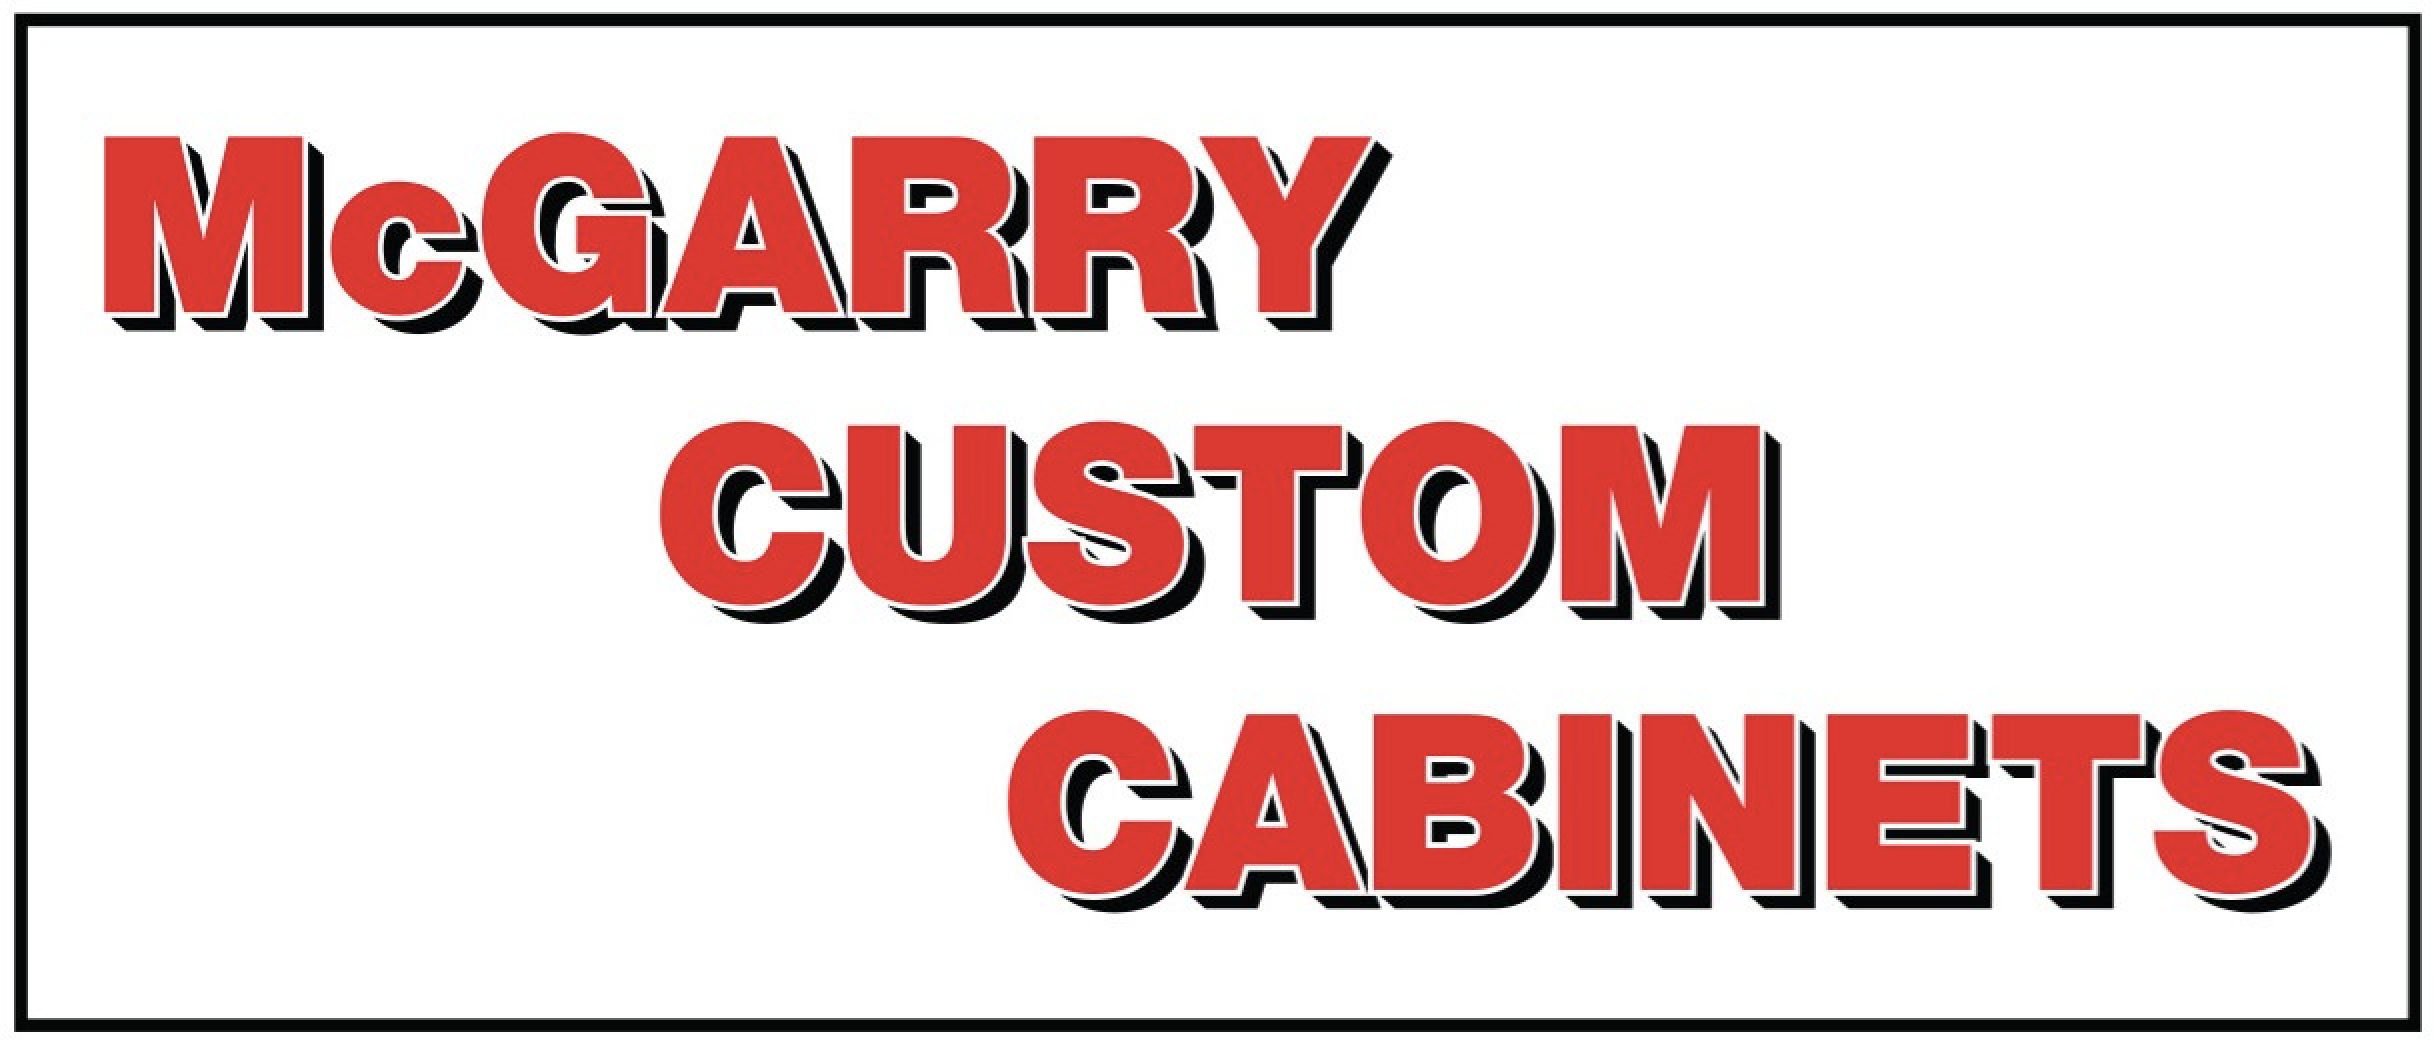 McGarry Custom Cabinets